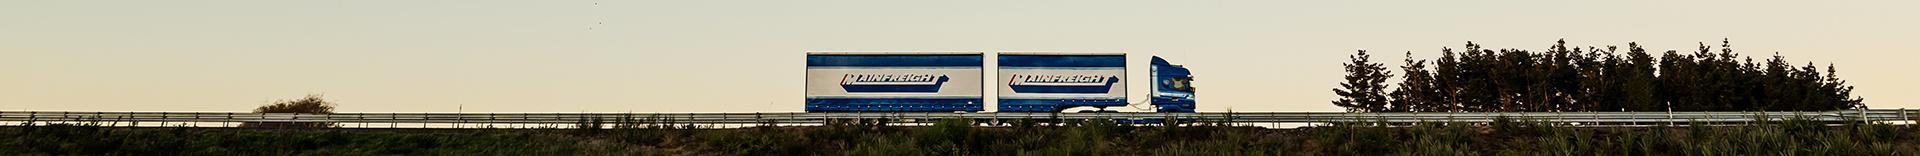 US Nationwide Freight